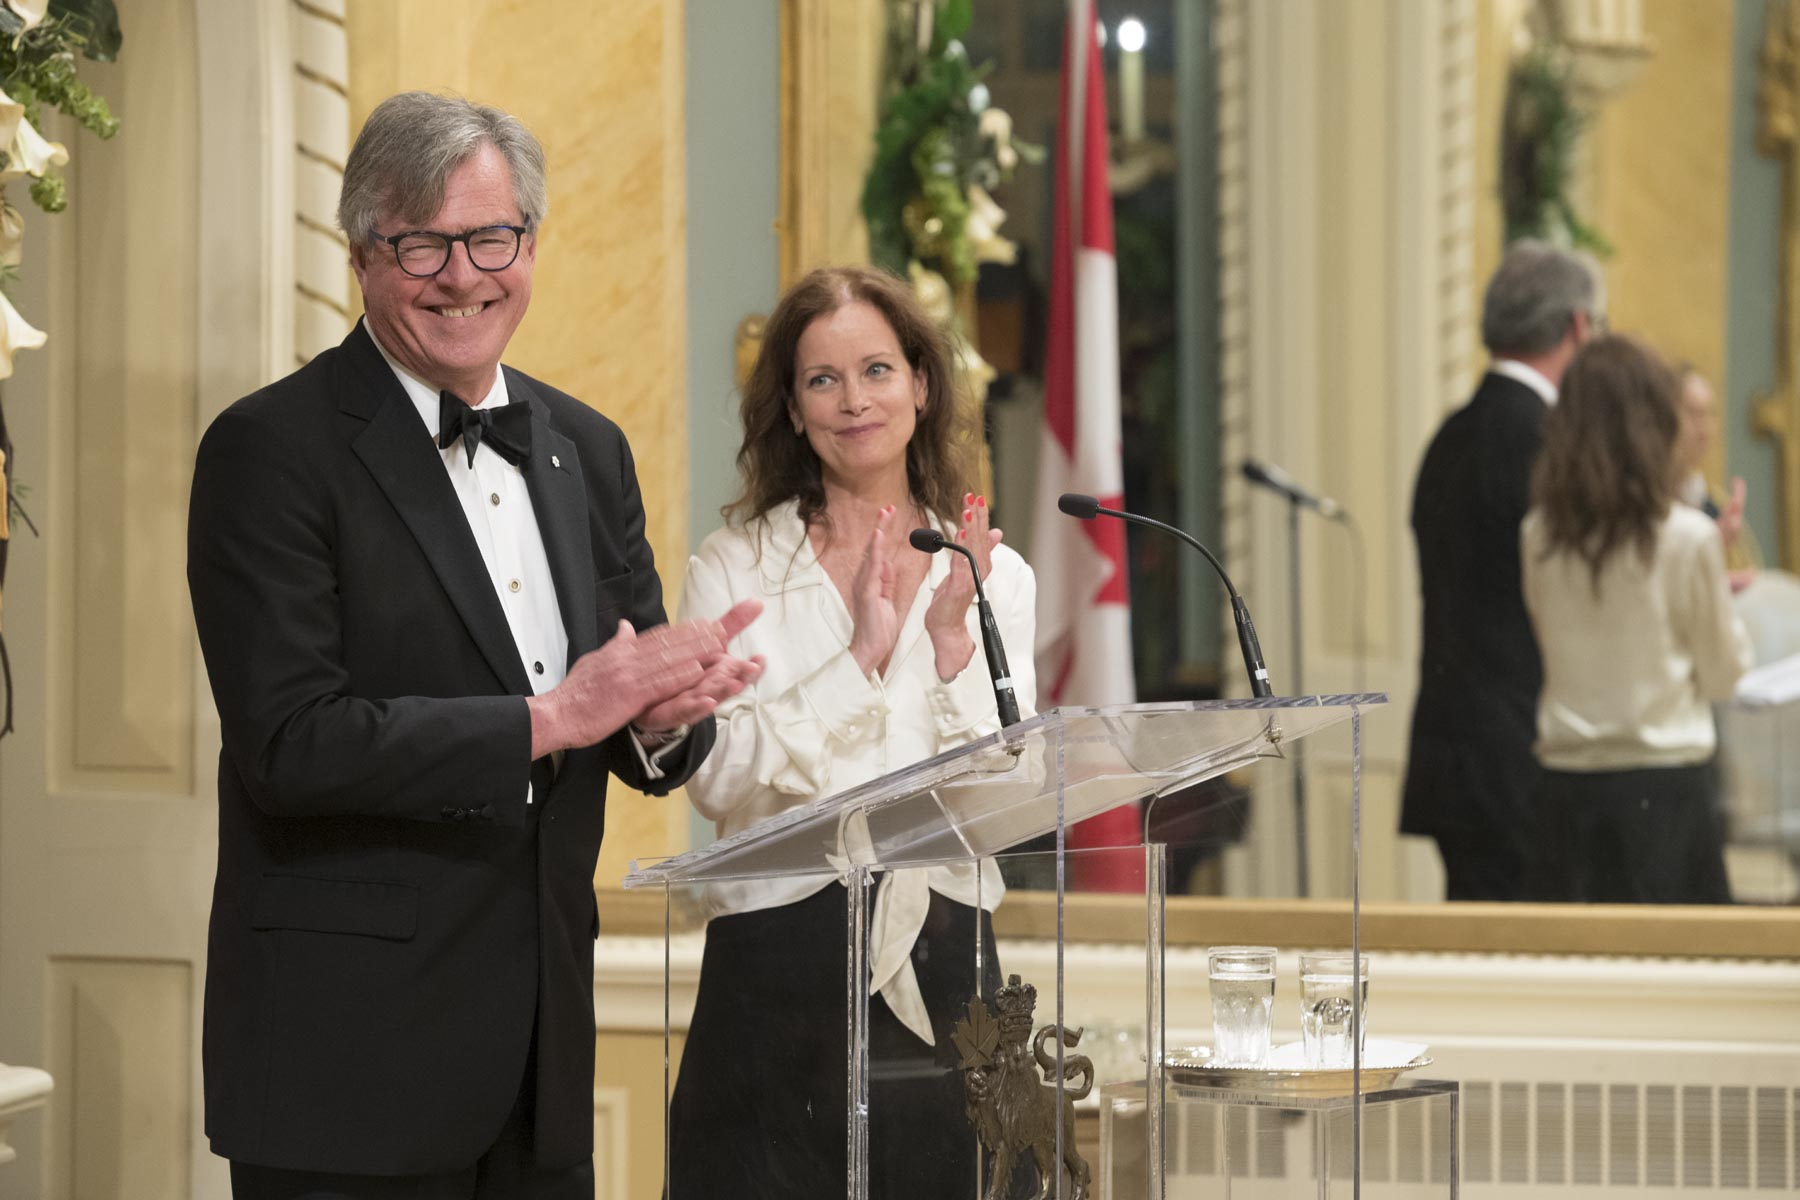 Chair and CEO Mr. Douglas Knight and Co-Chair Ms. Anik Bissonnette of the Governor General's Performing Arts Awards Foundation presented each recipient to the audience.